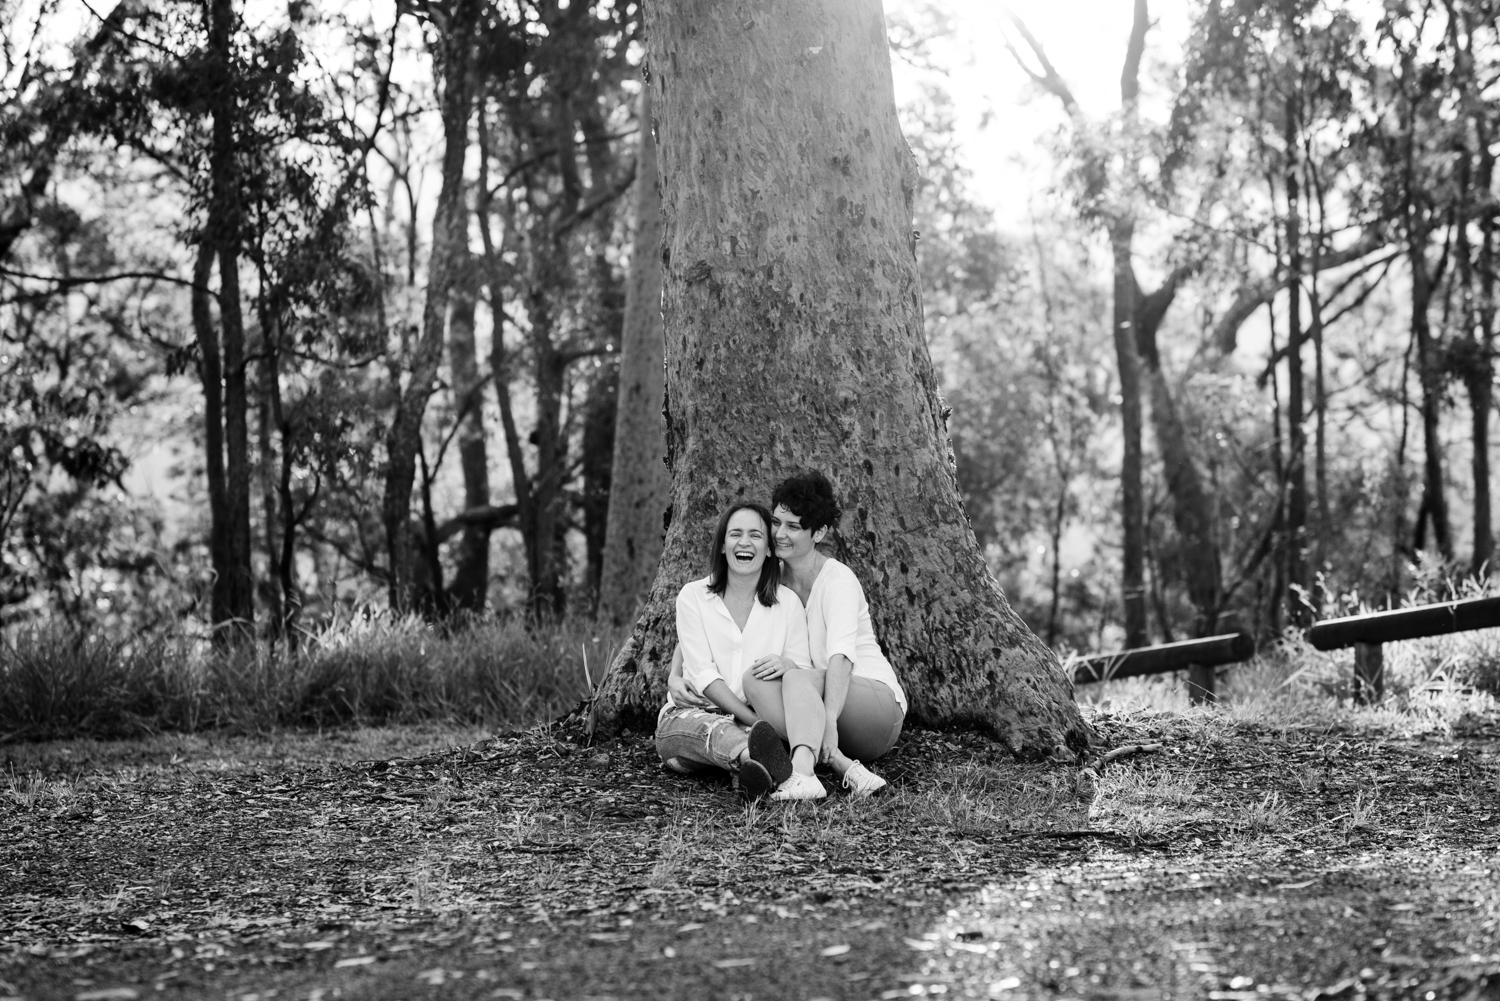 Brisbane Lesbian Wedding Photographer | Same-Sex Engagement-Elopement Photography-22.jpg